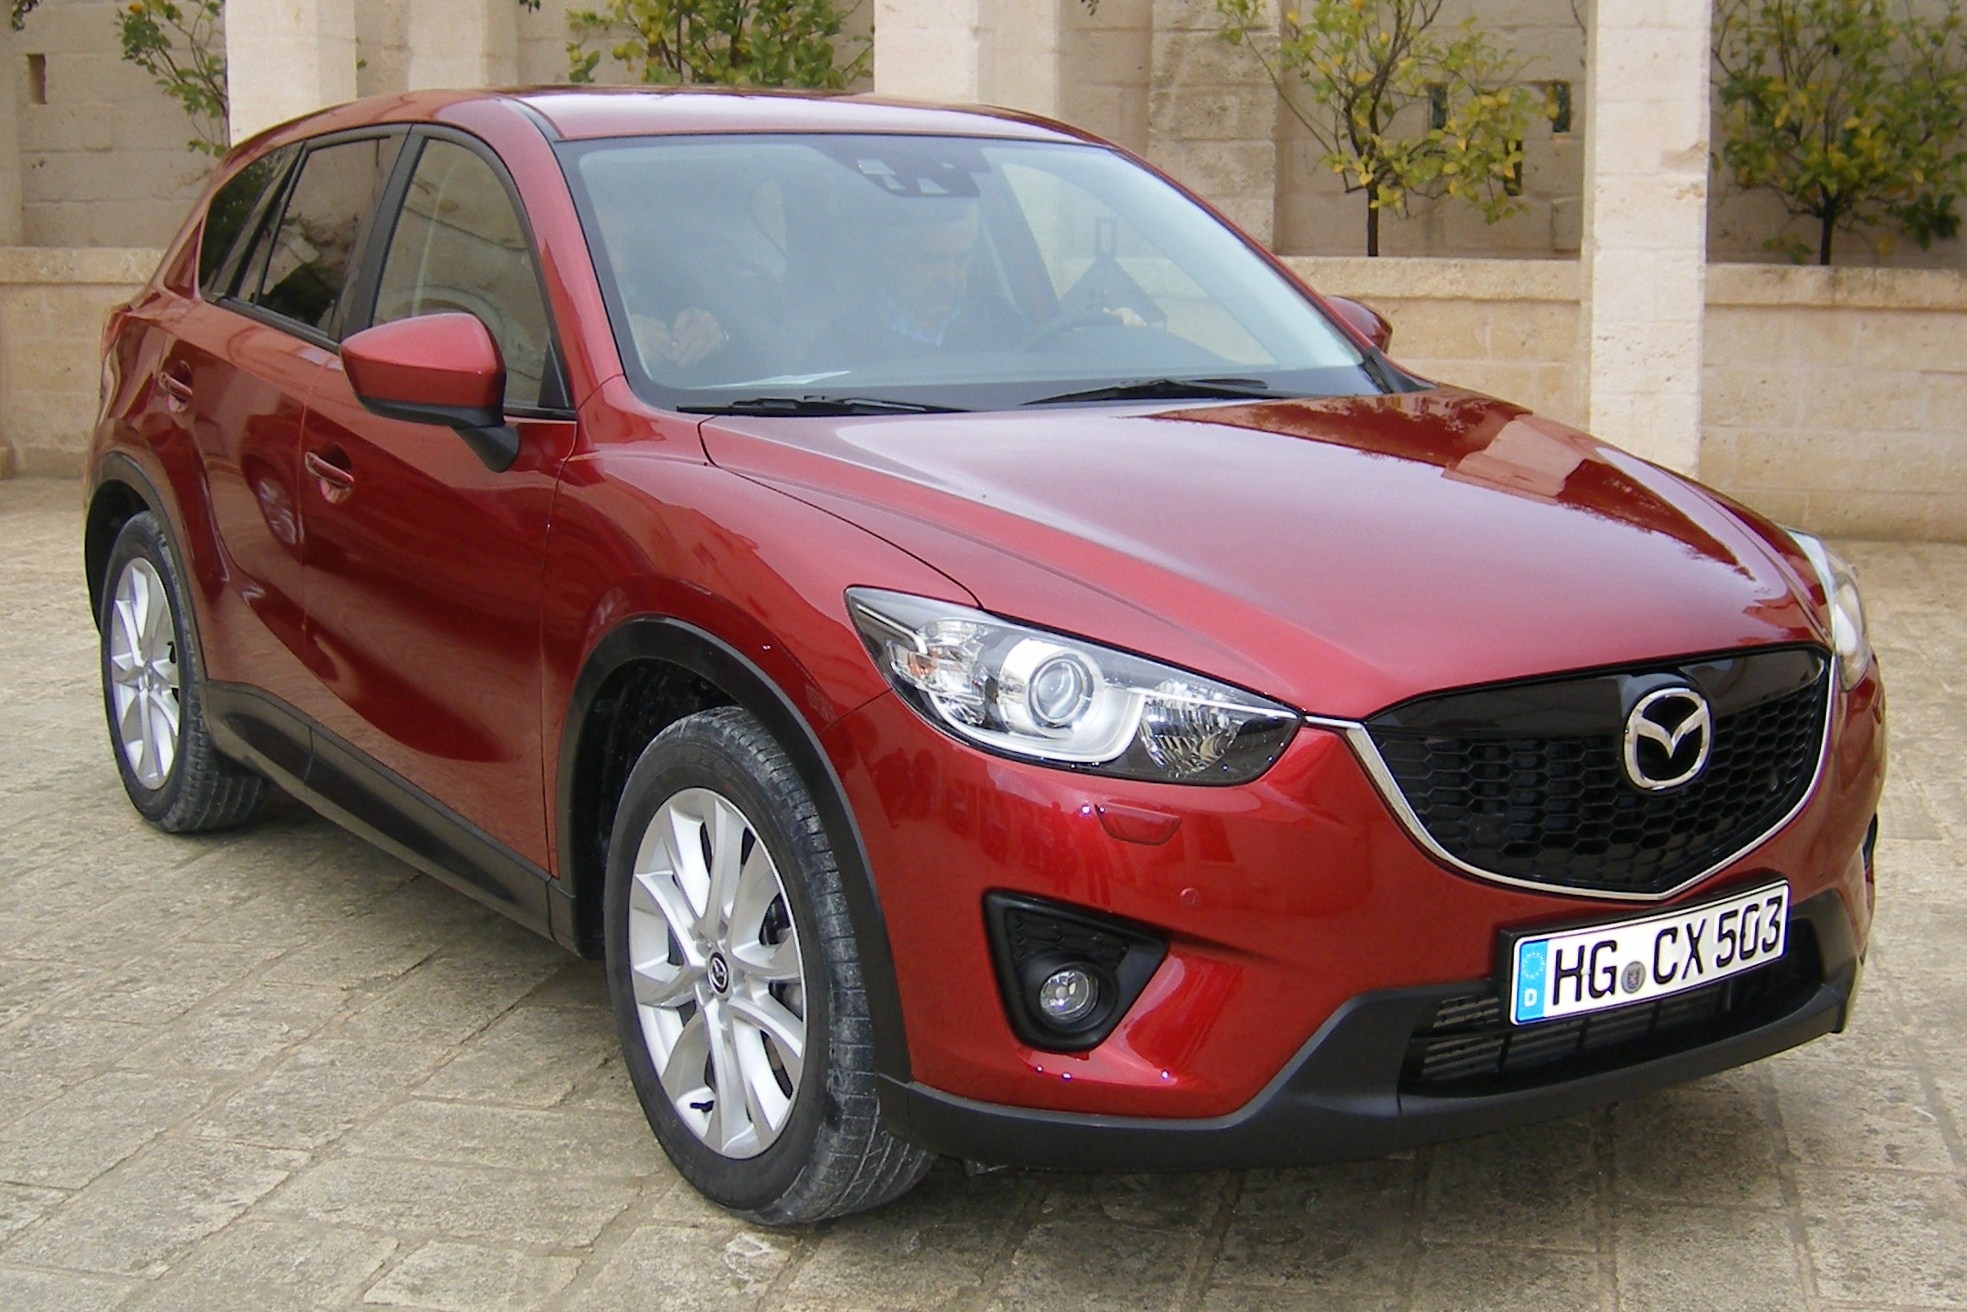 File:Mazda CX5.JPG - Wikipedia